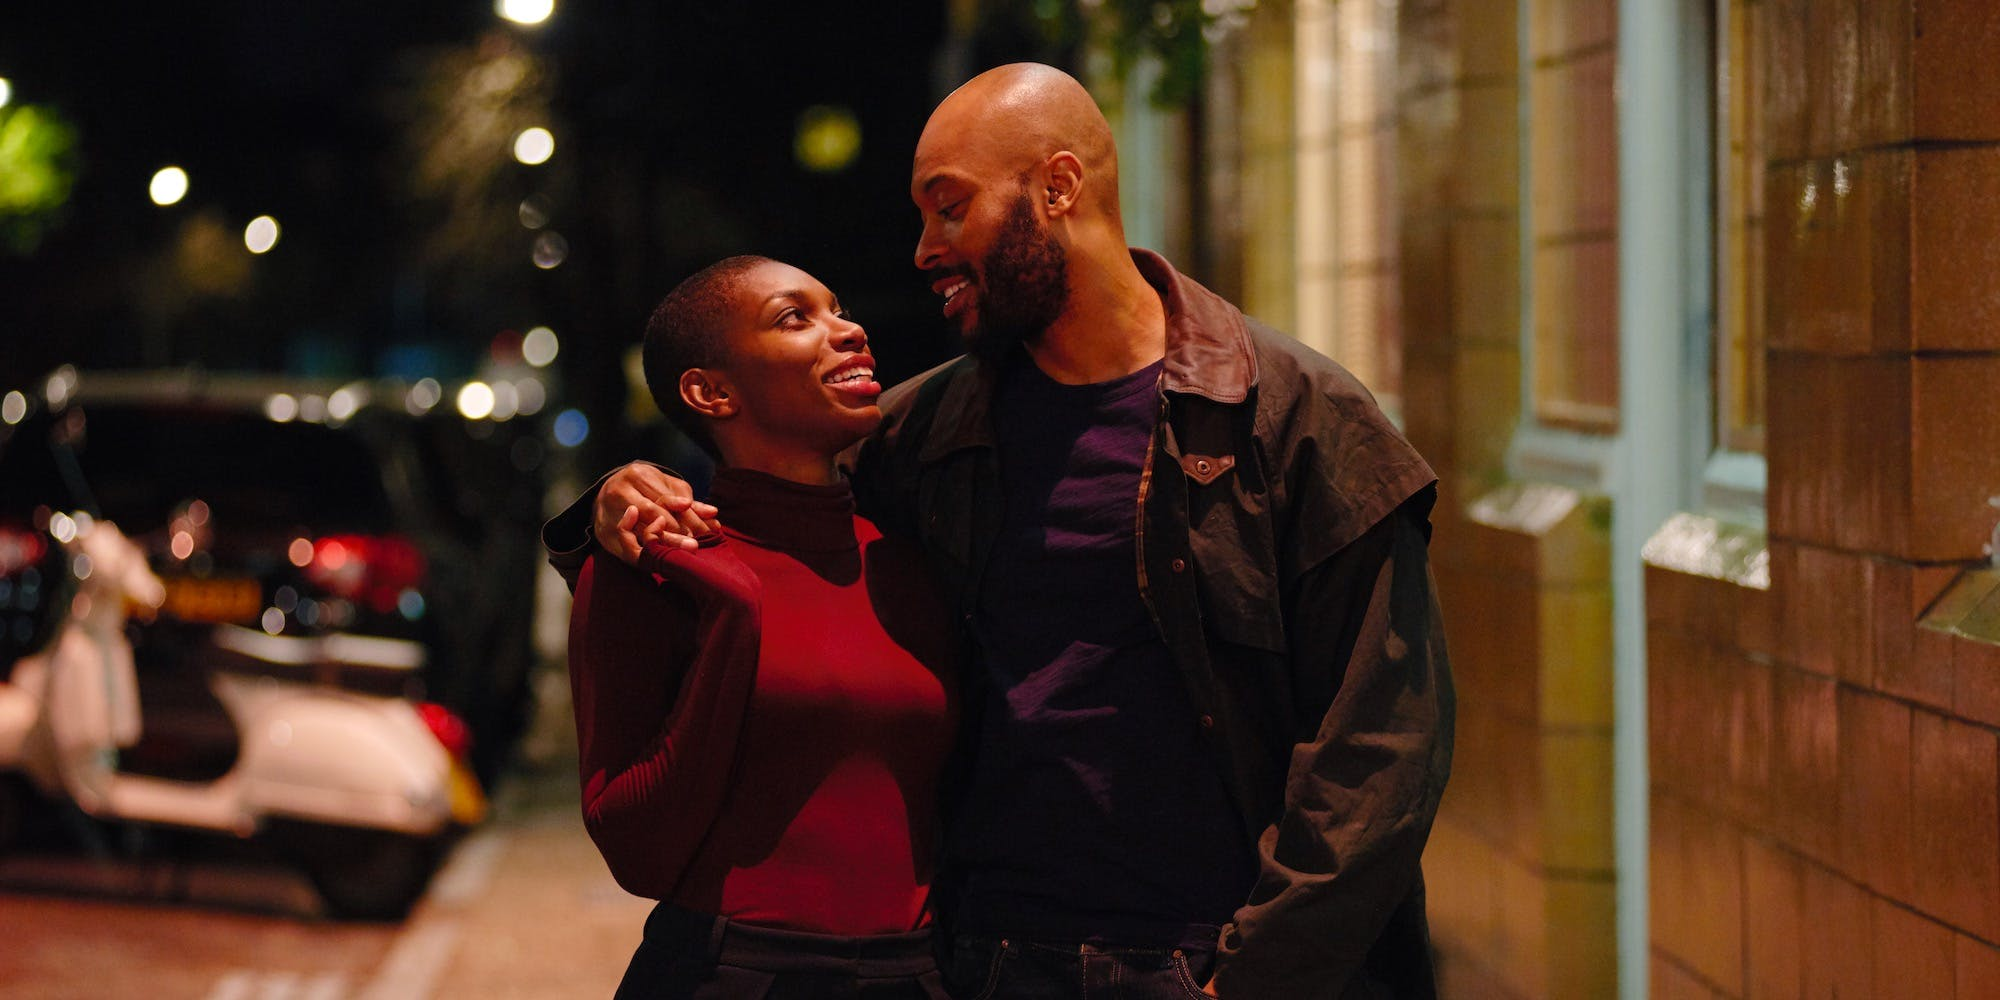 Movie still of Michaela Coel and Arinzé Kene in the musical Been So Long on Netflix.